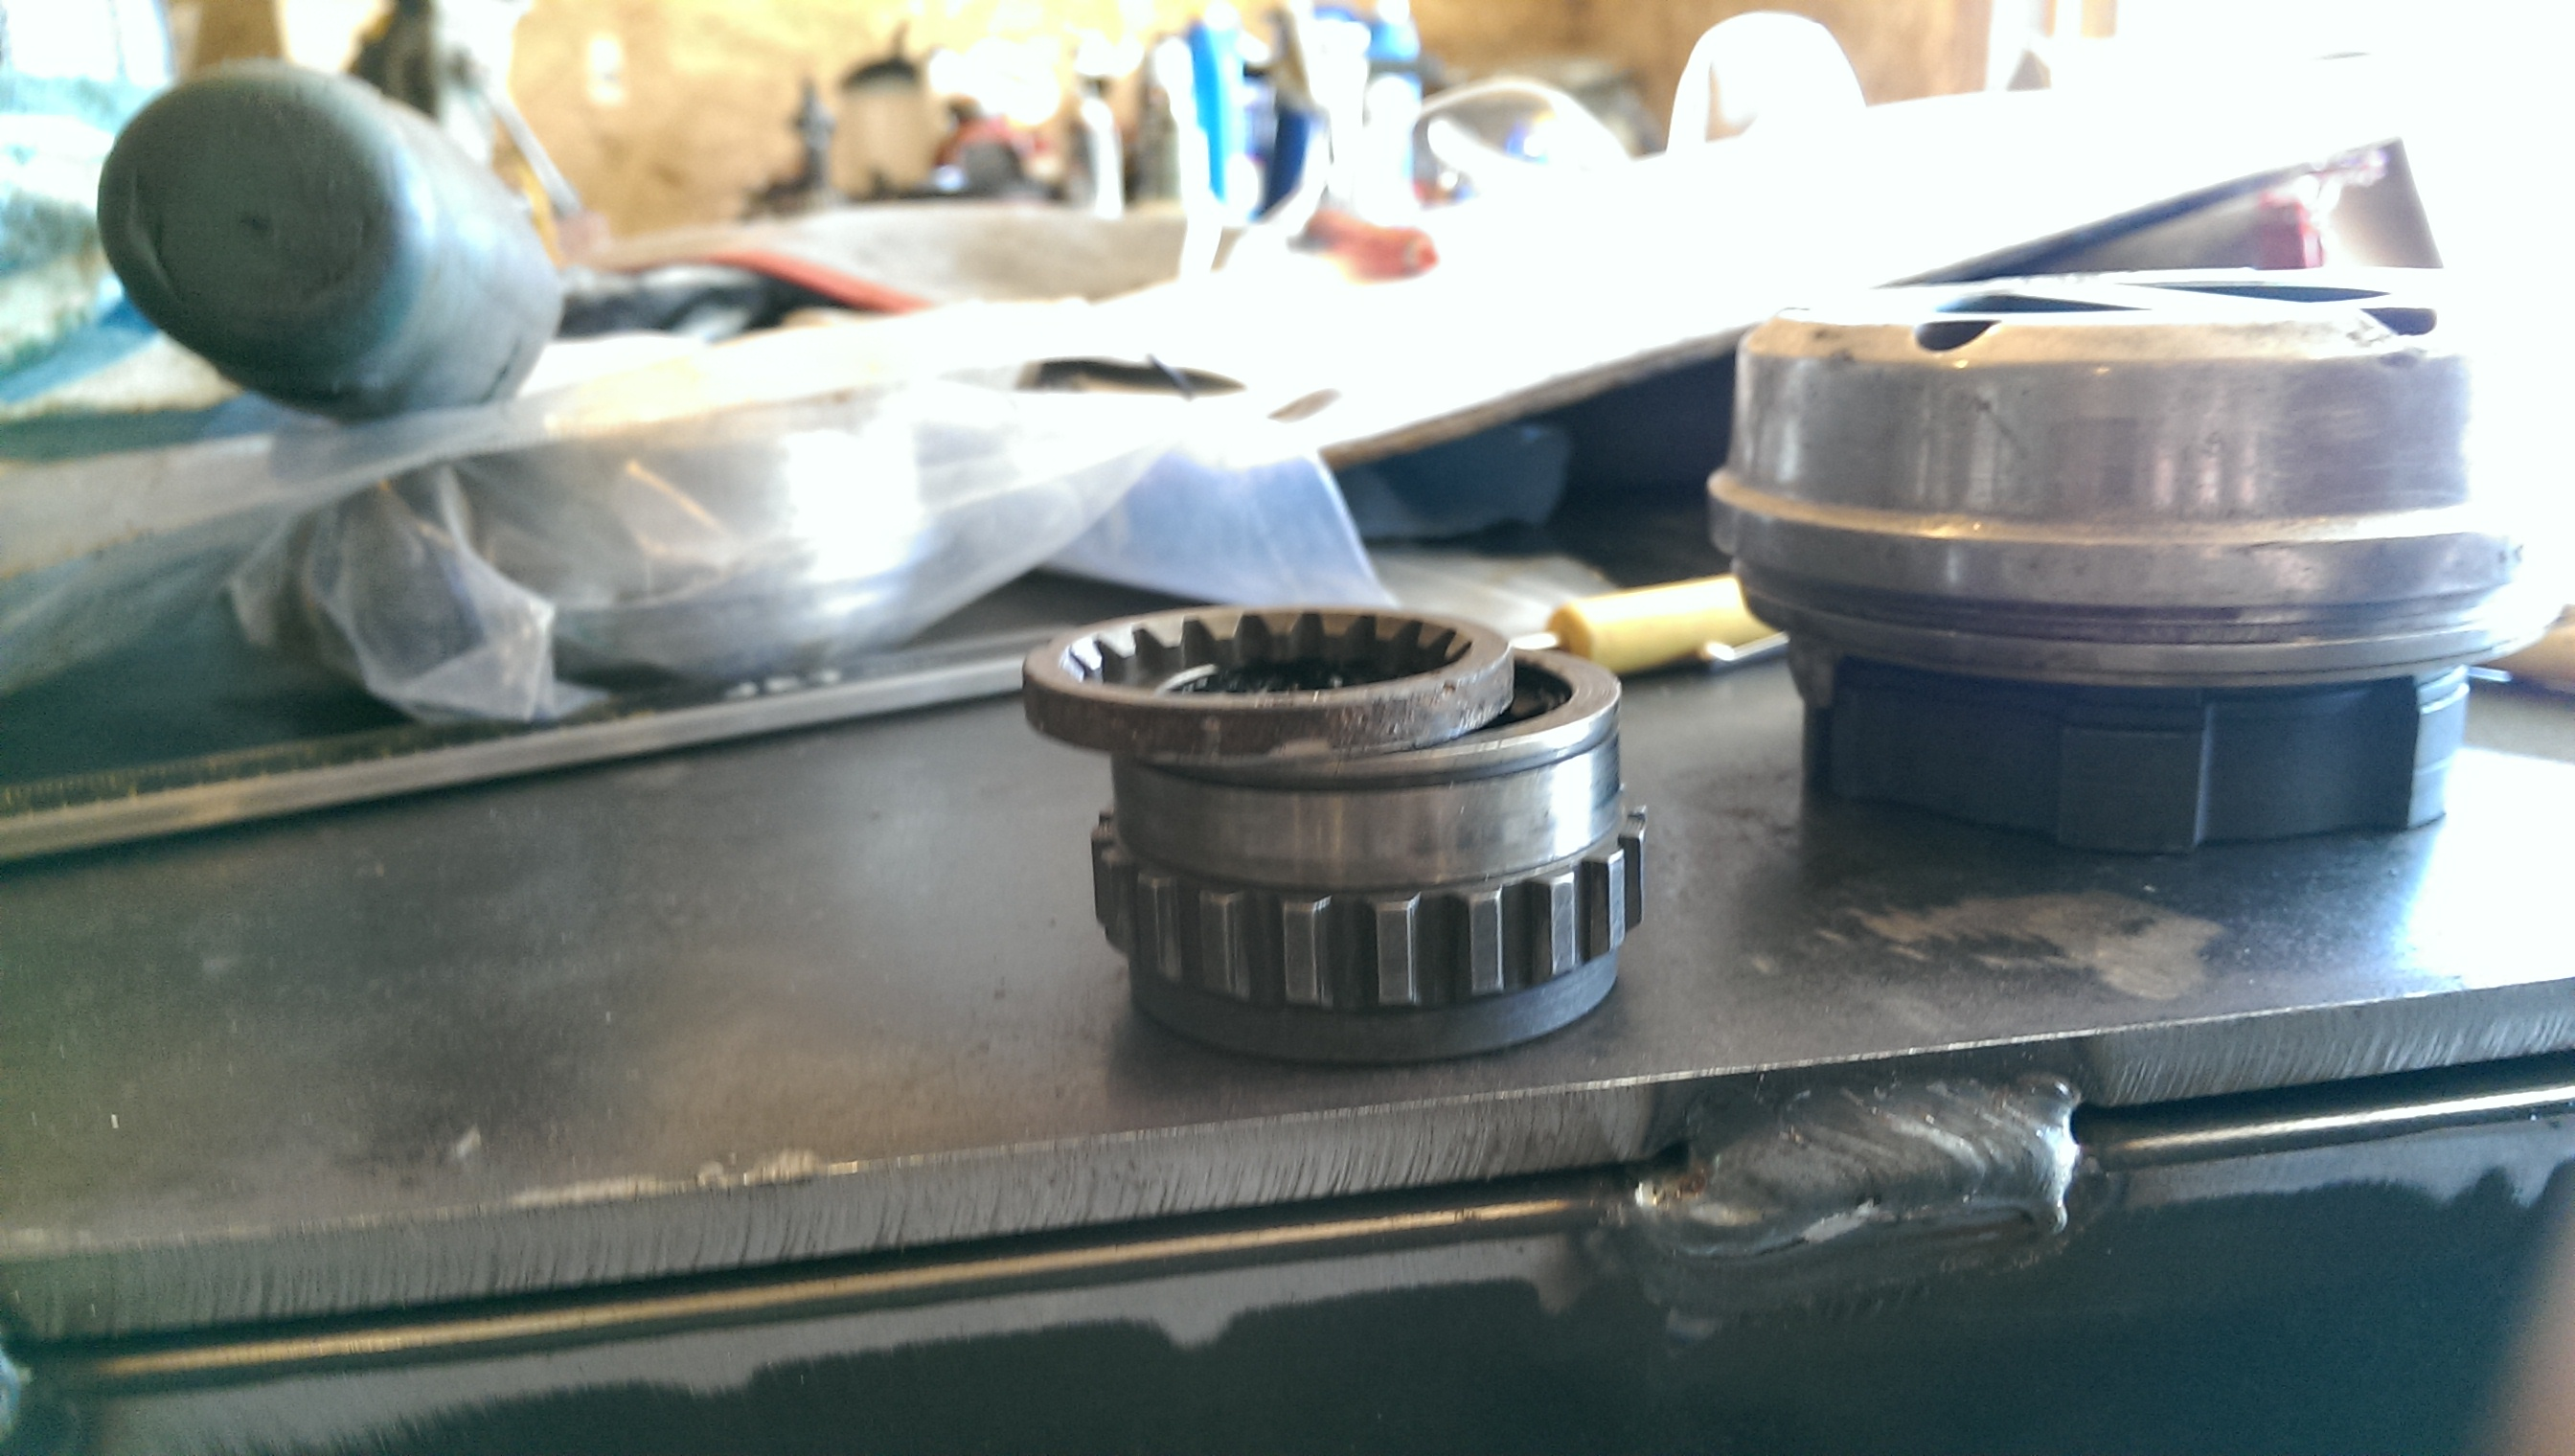 "the superwinch hubs i found at the junkyard for free (nice score on that) didnt fit my outter axles properly. there was about 1/8th inch space between the snap ring the axle lock. which allowed axle to slid back into contact with the inner ""c"". this is not good. so I used the 19spline sleeve from the old locks that I had to cut off from rust. I made a small spacer out of these as the superwinch hub lock has a special low profile snap ring so what ever spacer is used NEEDS to fit in the axle splines to not slide over top of the low profile snap ring"